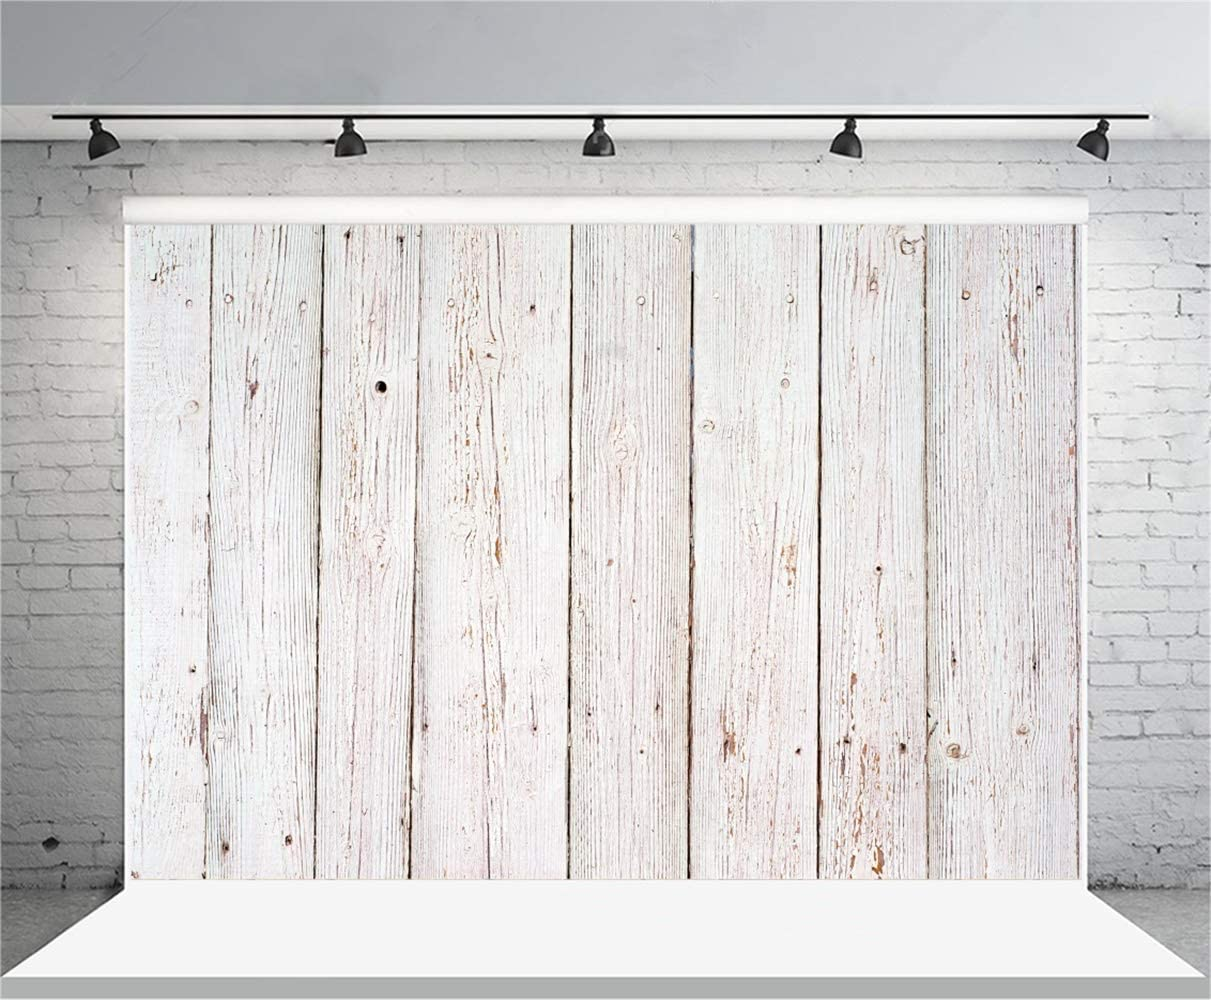 GoEoo 10x7ft Rustic Weathered Whitish Wooden Board Backdrop Vinyl Grunge Mottled Vertical Striped Wood Plank Plain Background for Photography Child Adult Portrait Kids Clothes Shoot Studio